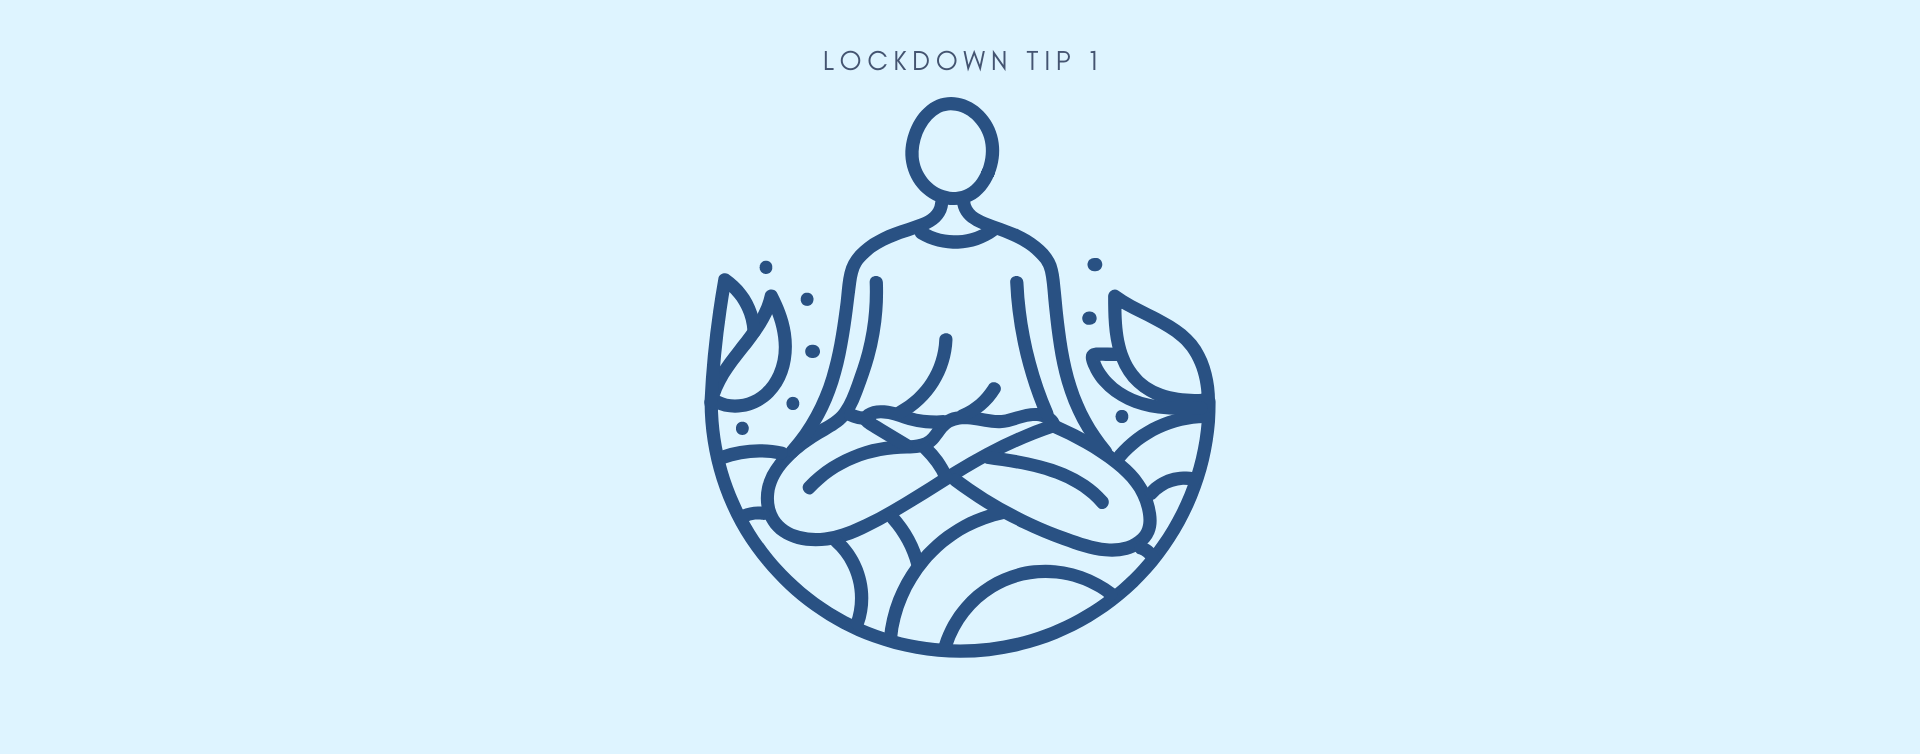 MCSA Lockdown Tip 1